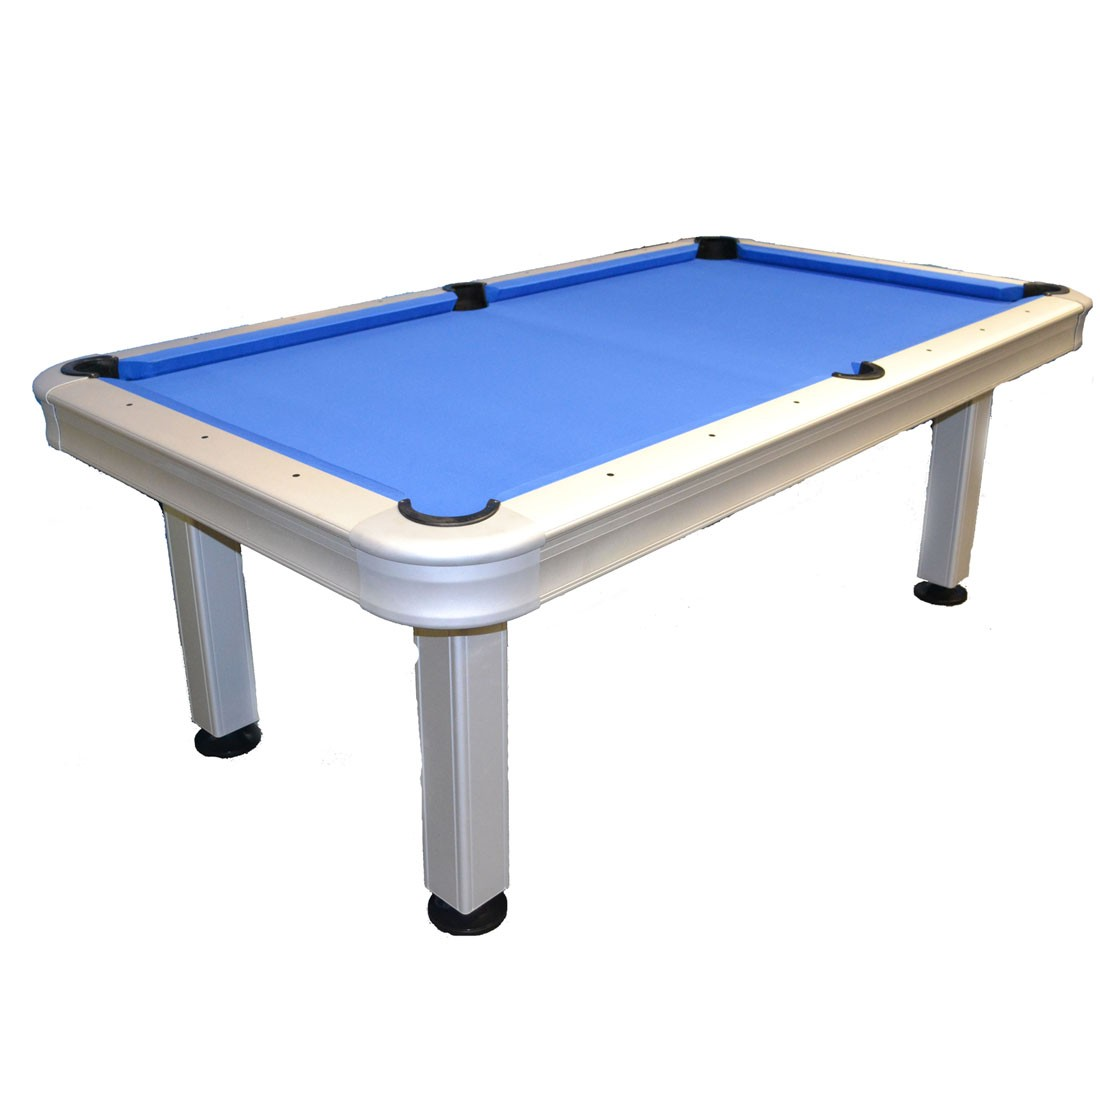 7' Outdoor Pool Table with Accessories - GameTablesOnline.com